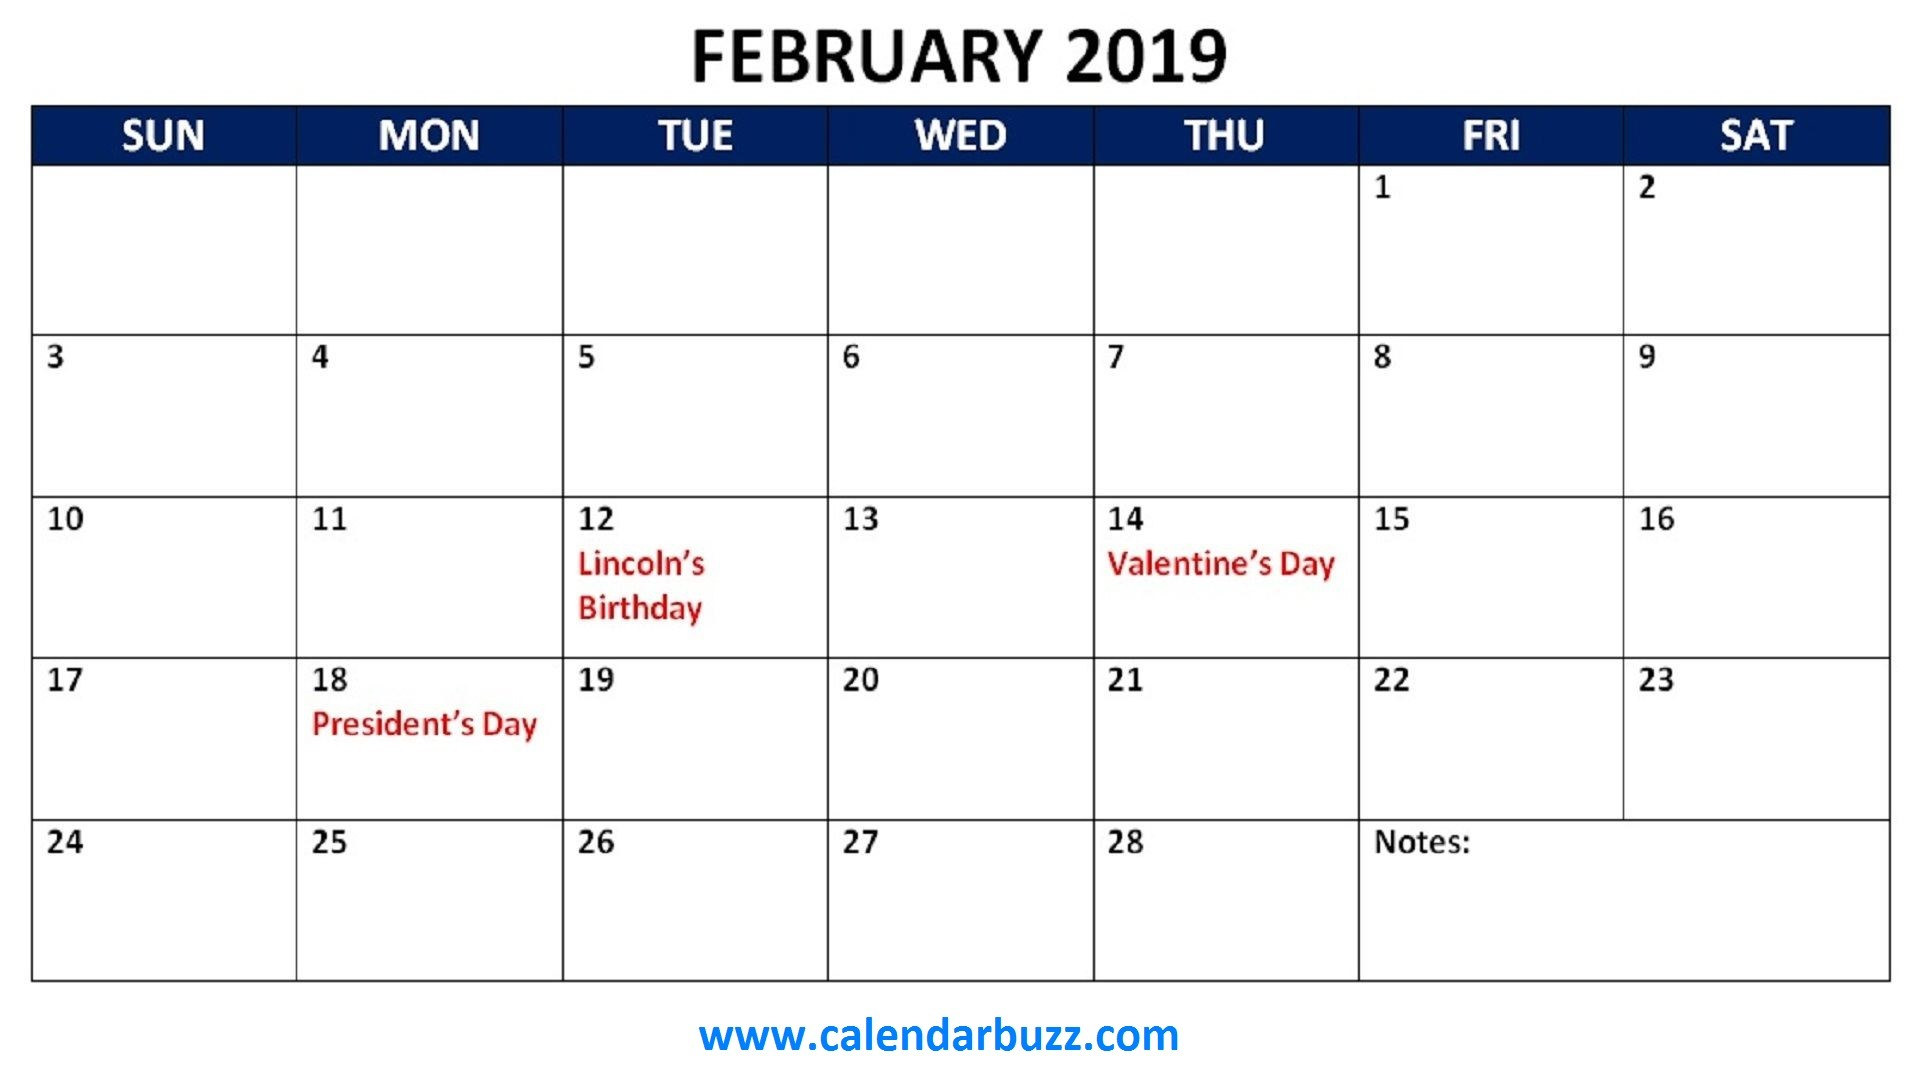 March Calendar Blank 2019 Mejores Y Más Novedosos February 2019 Calendar with Holidays Printable Usa Uk Canada Nz Sa Of March Calendar Blank 2019 Más Recientemente Liberado Art Prints Lunar Calendar 2019